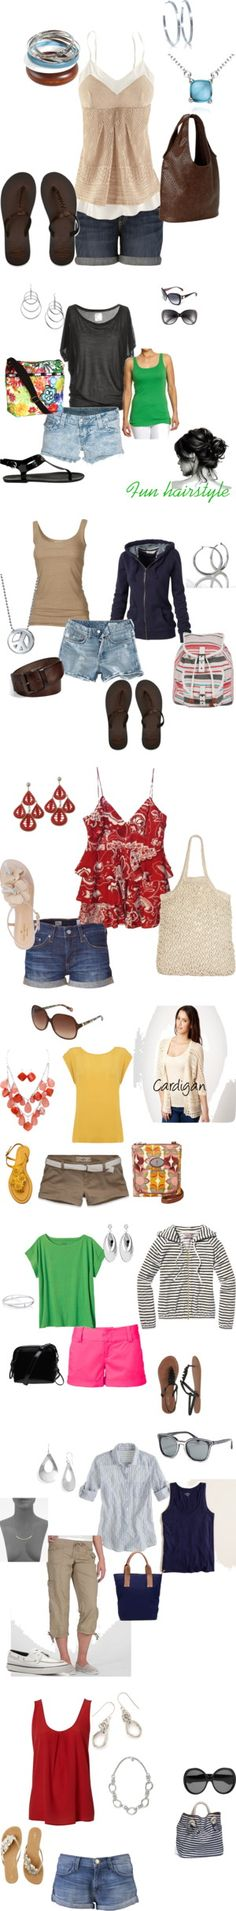 """""""Cute and casual for summer"""" by tnoelle77 on Polyvore"""